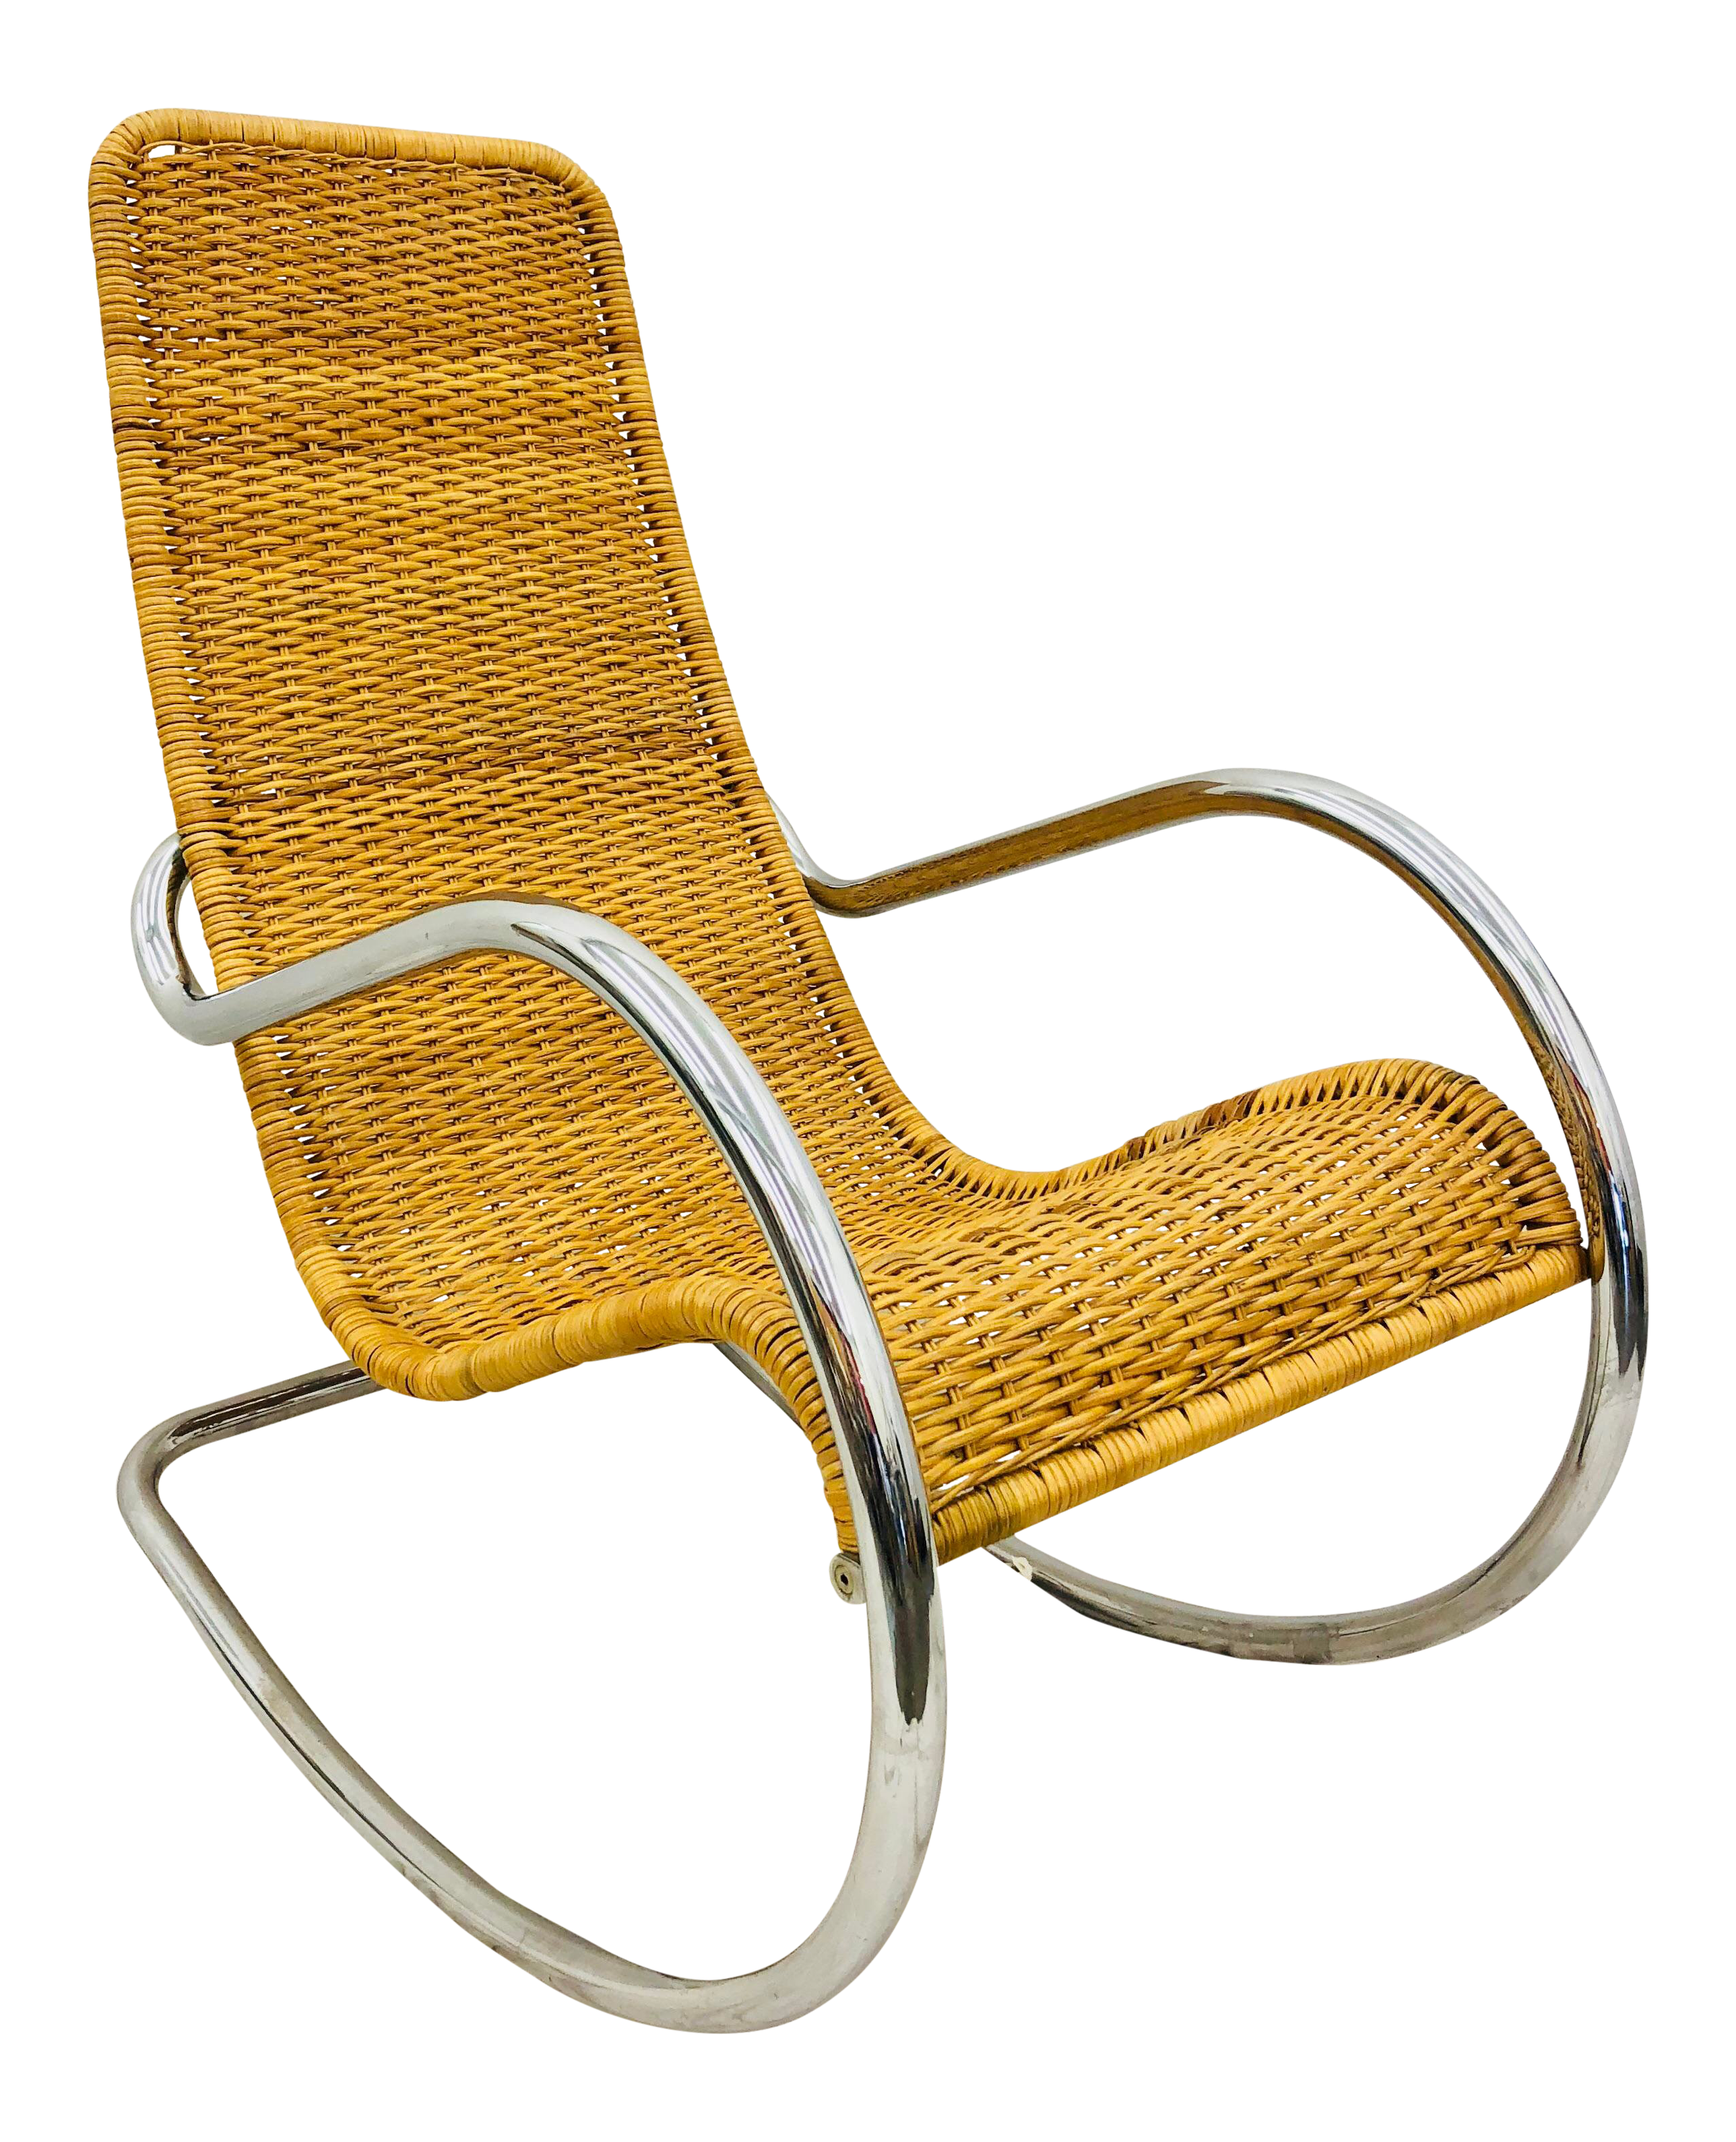 Sensational Mid Century Modern Thonet Rocking Chair Gmtry Best Dining Table And Chair Ideas Images Gmtryco